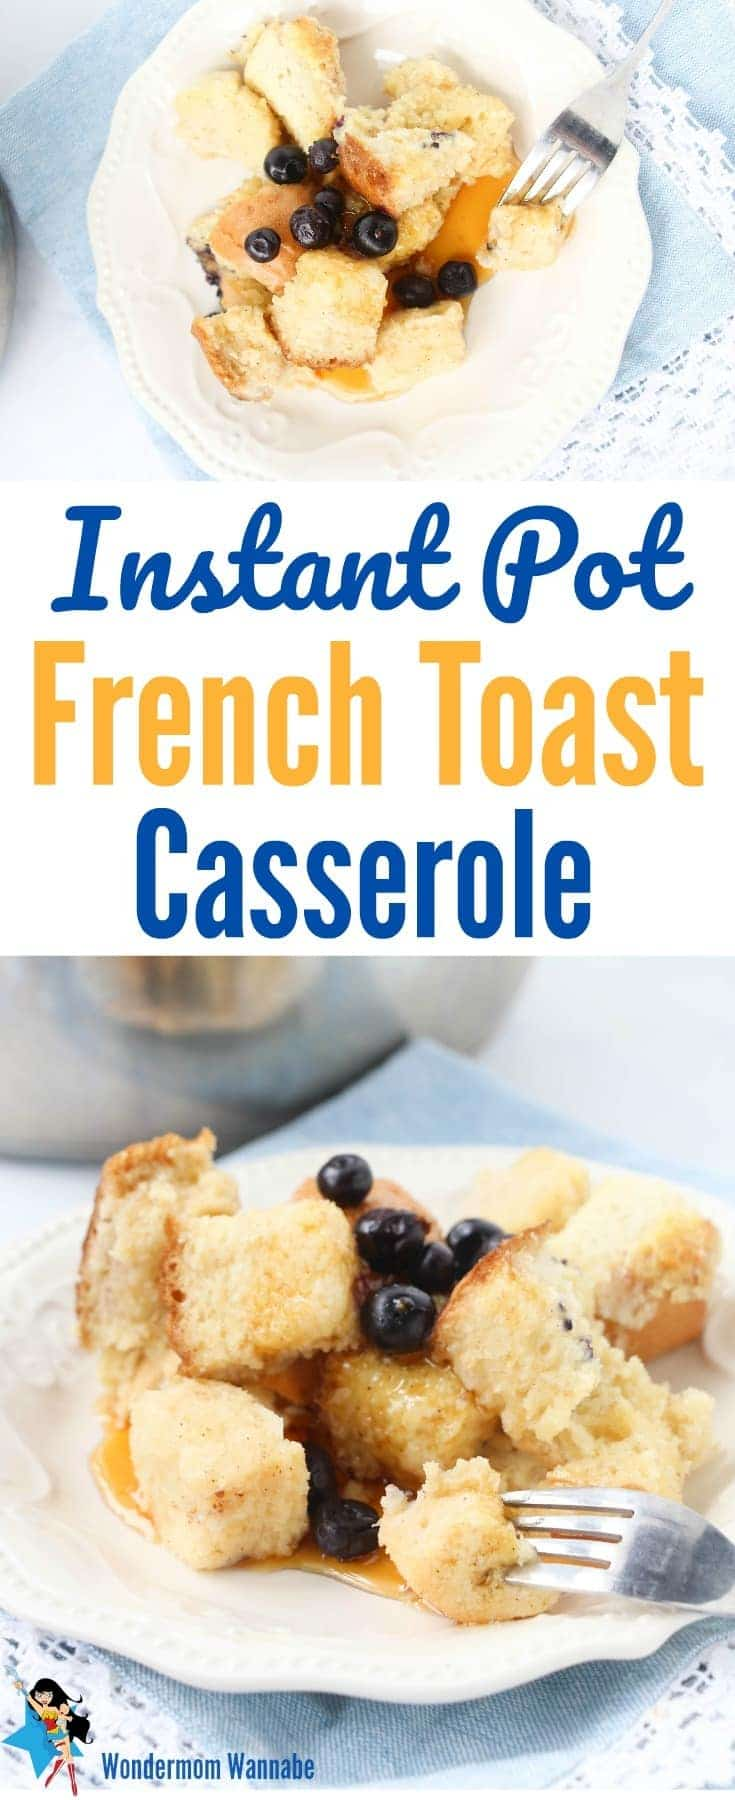 Bring the magic of your Instant Pot to your morning meal with this Instant Pot French Toast Casserole recipe. Easy to make, loved by kids!  #instantpot #pressurecooker #frenchtoast #breakfast via @wondermomwannab